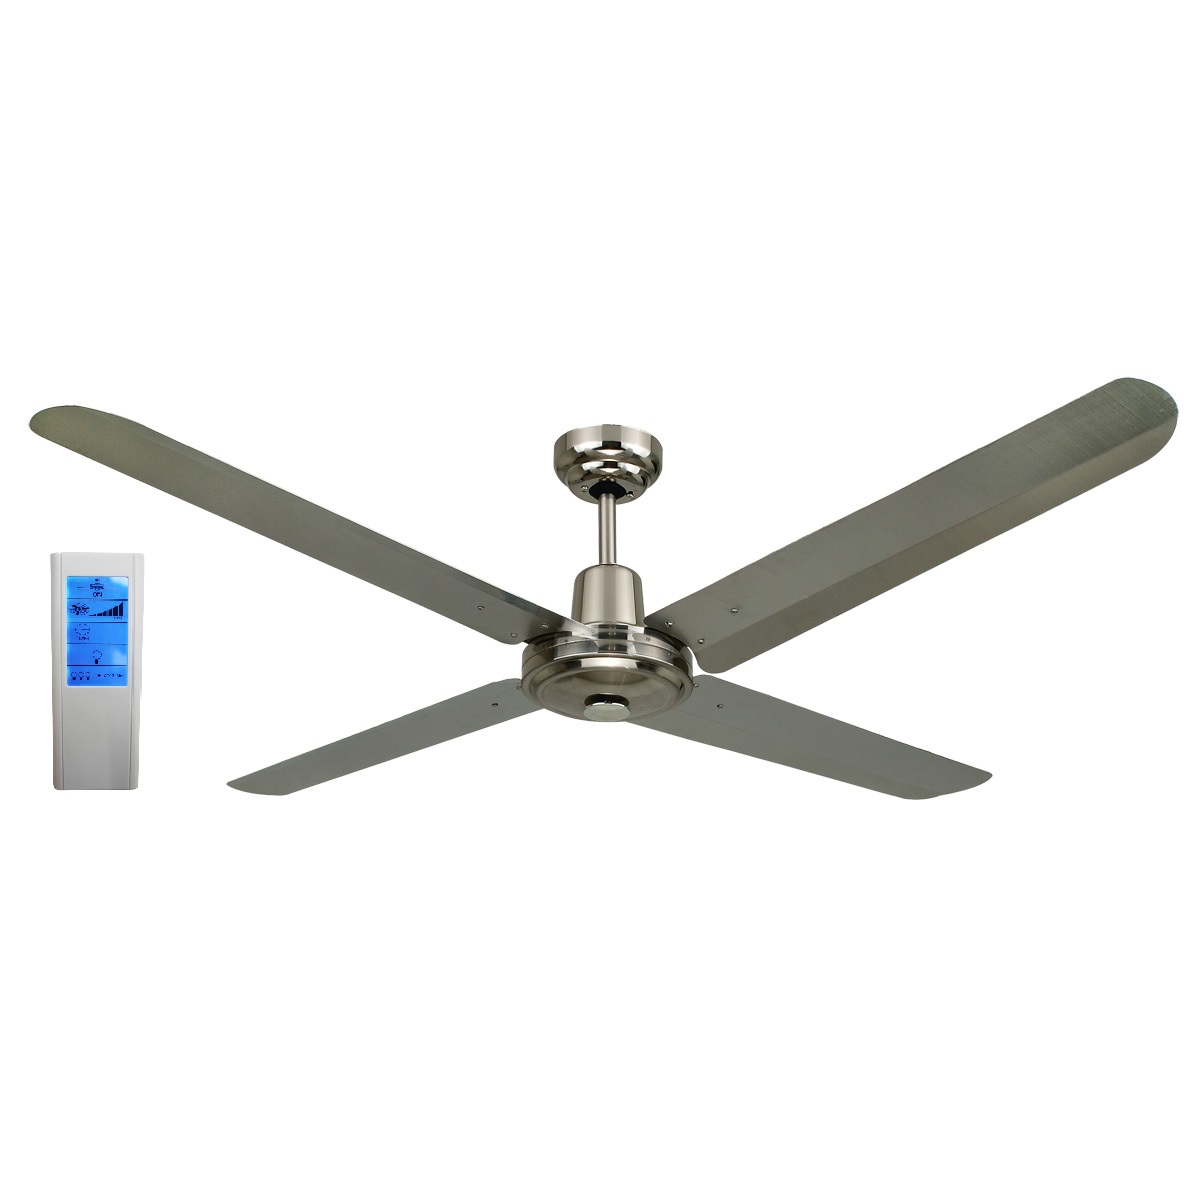 Blizzard56 1200mm 316ss ceiling fan touch pad wh remote blizzard56